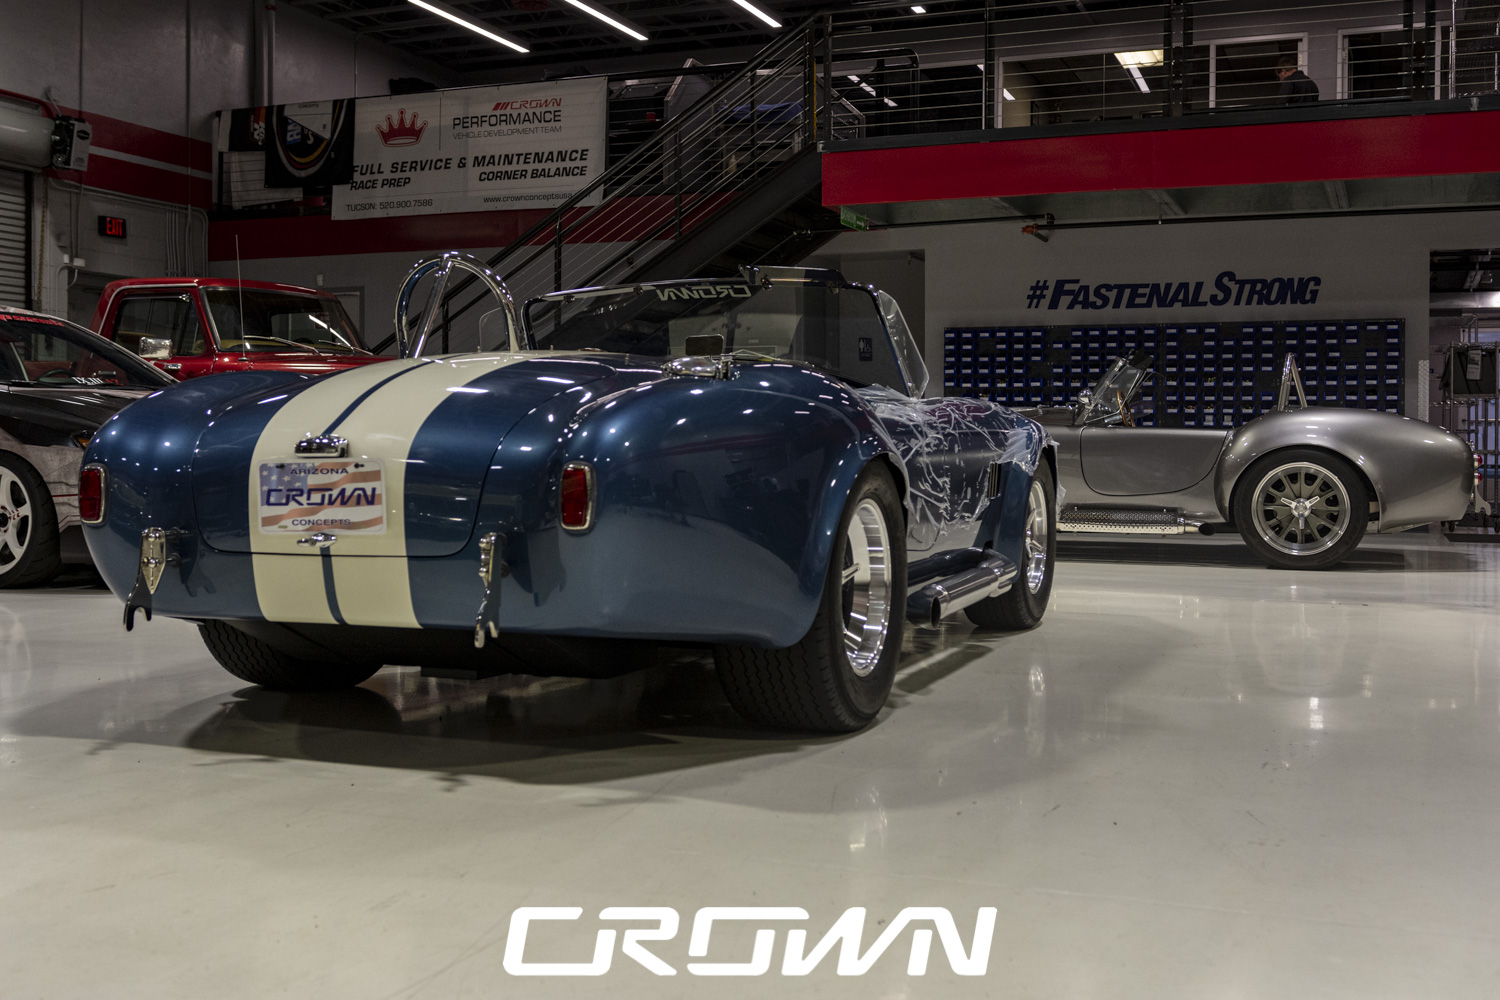 Two Shelby cobras at Crown Concepts